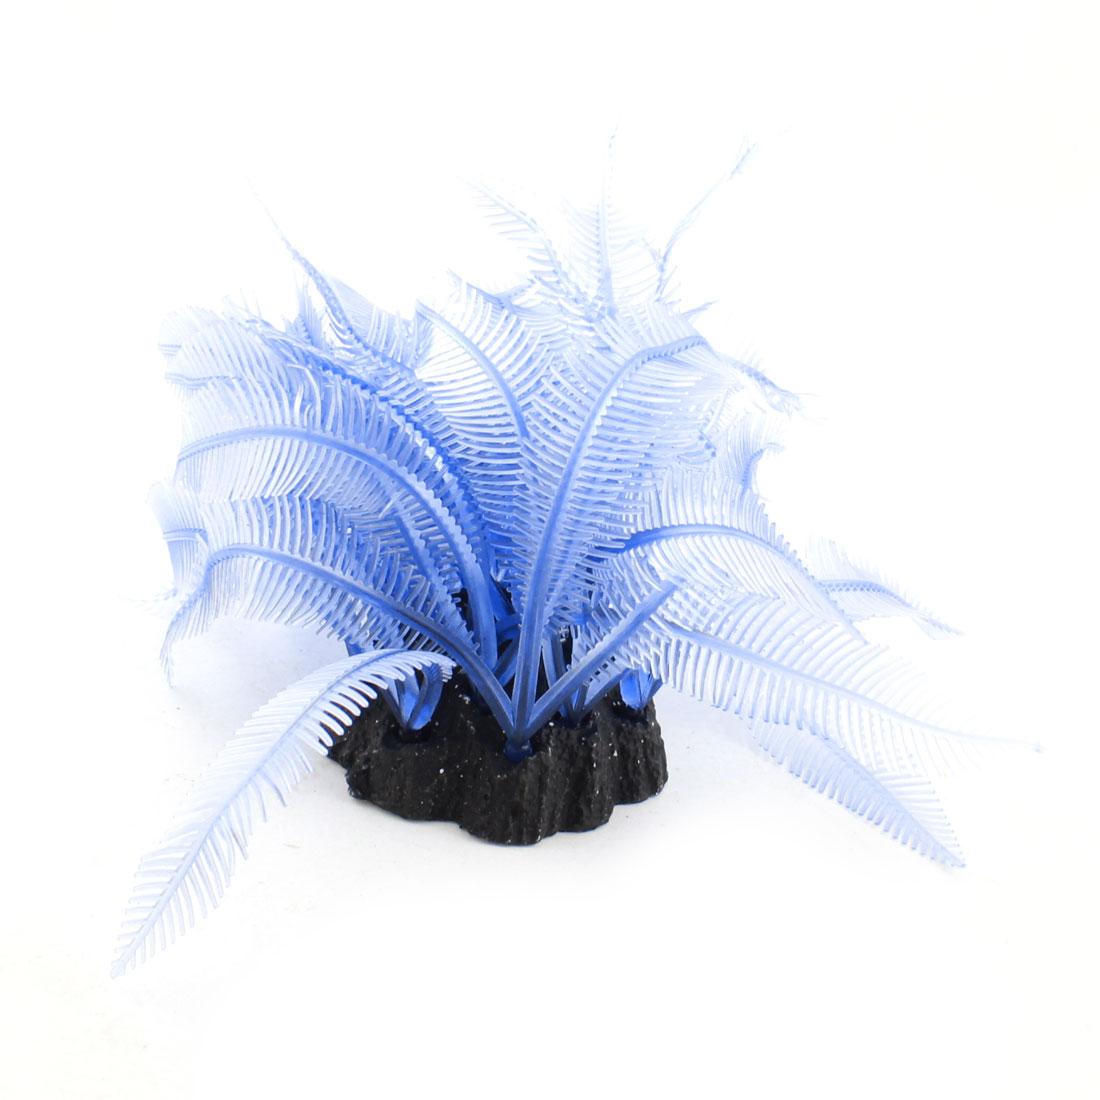 Blue Silicone Artificial Underwater Coral Plant Decor 13cm High for Fish Tank